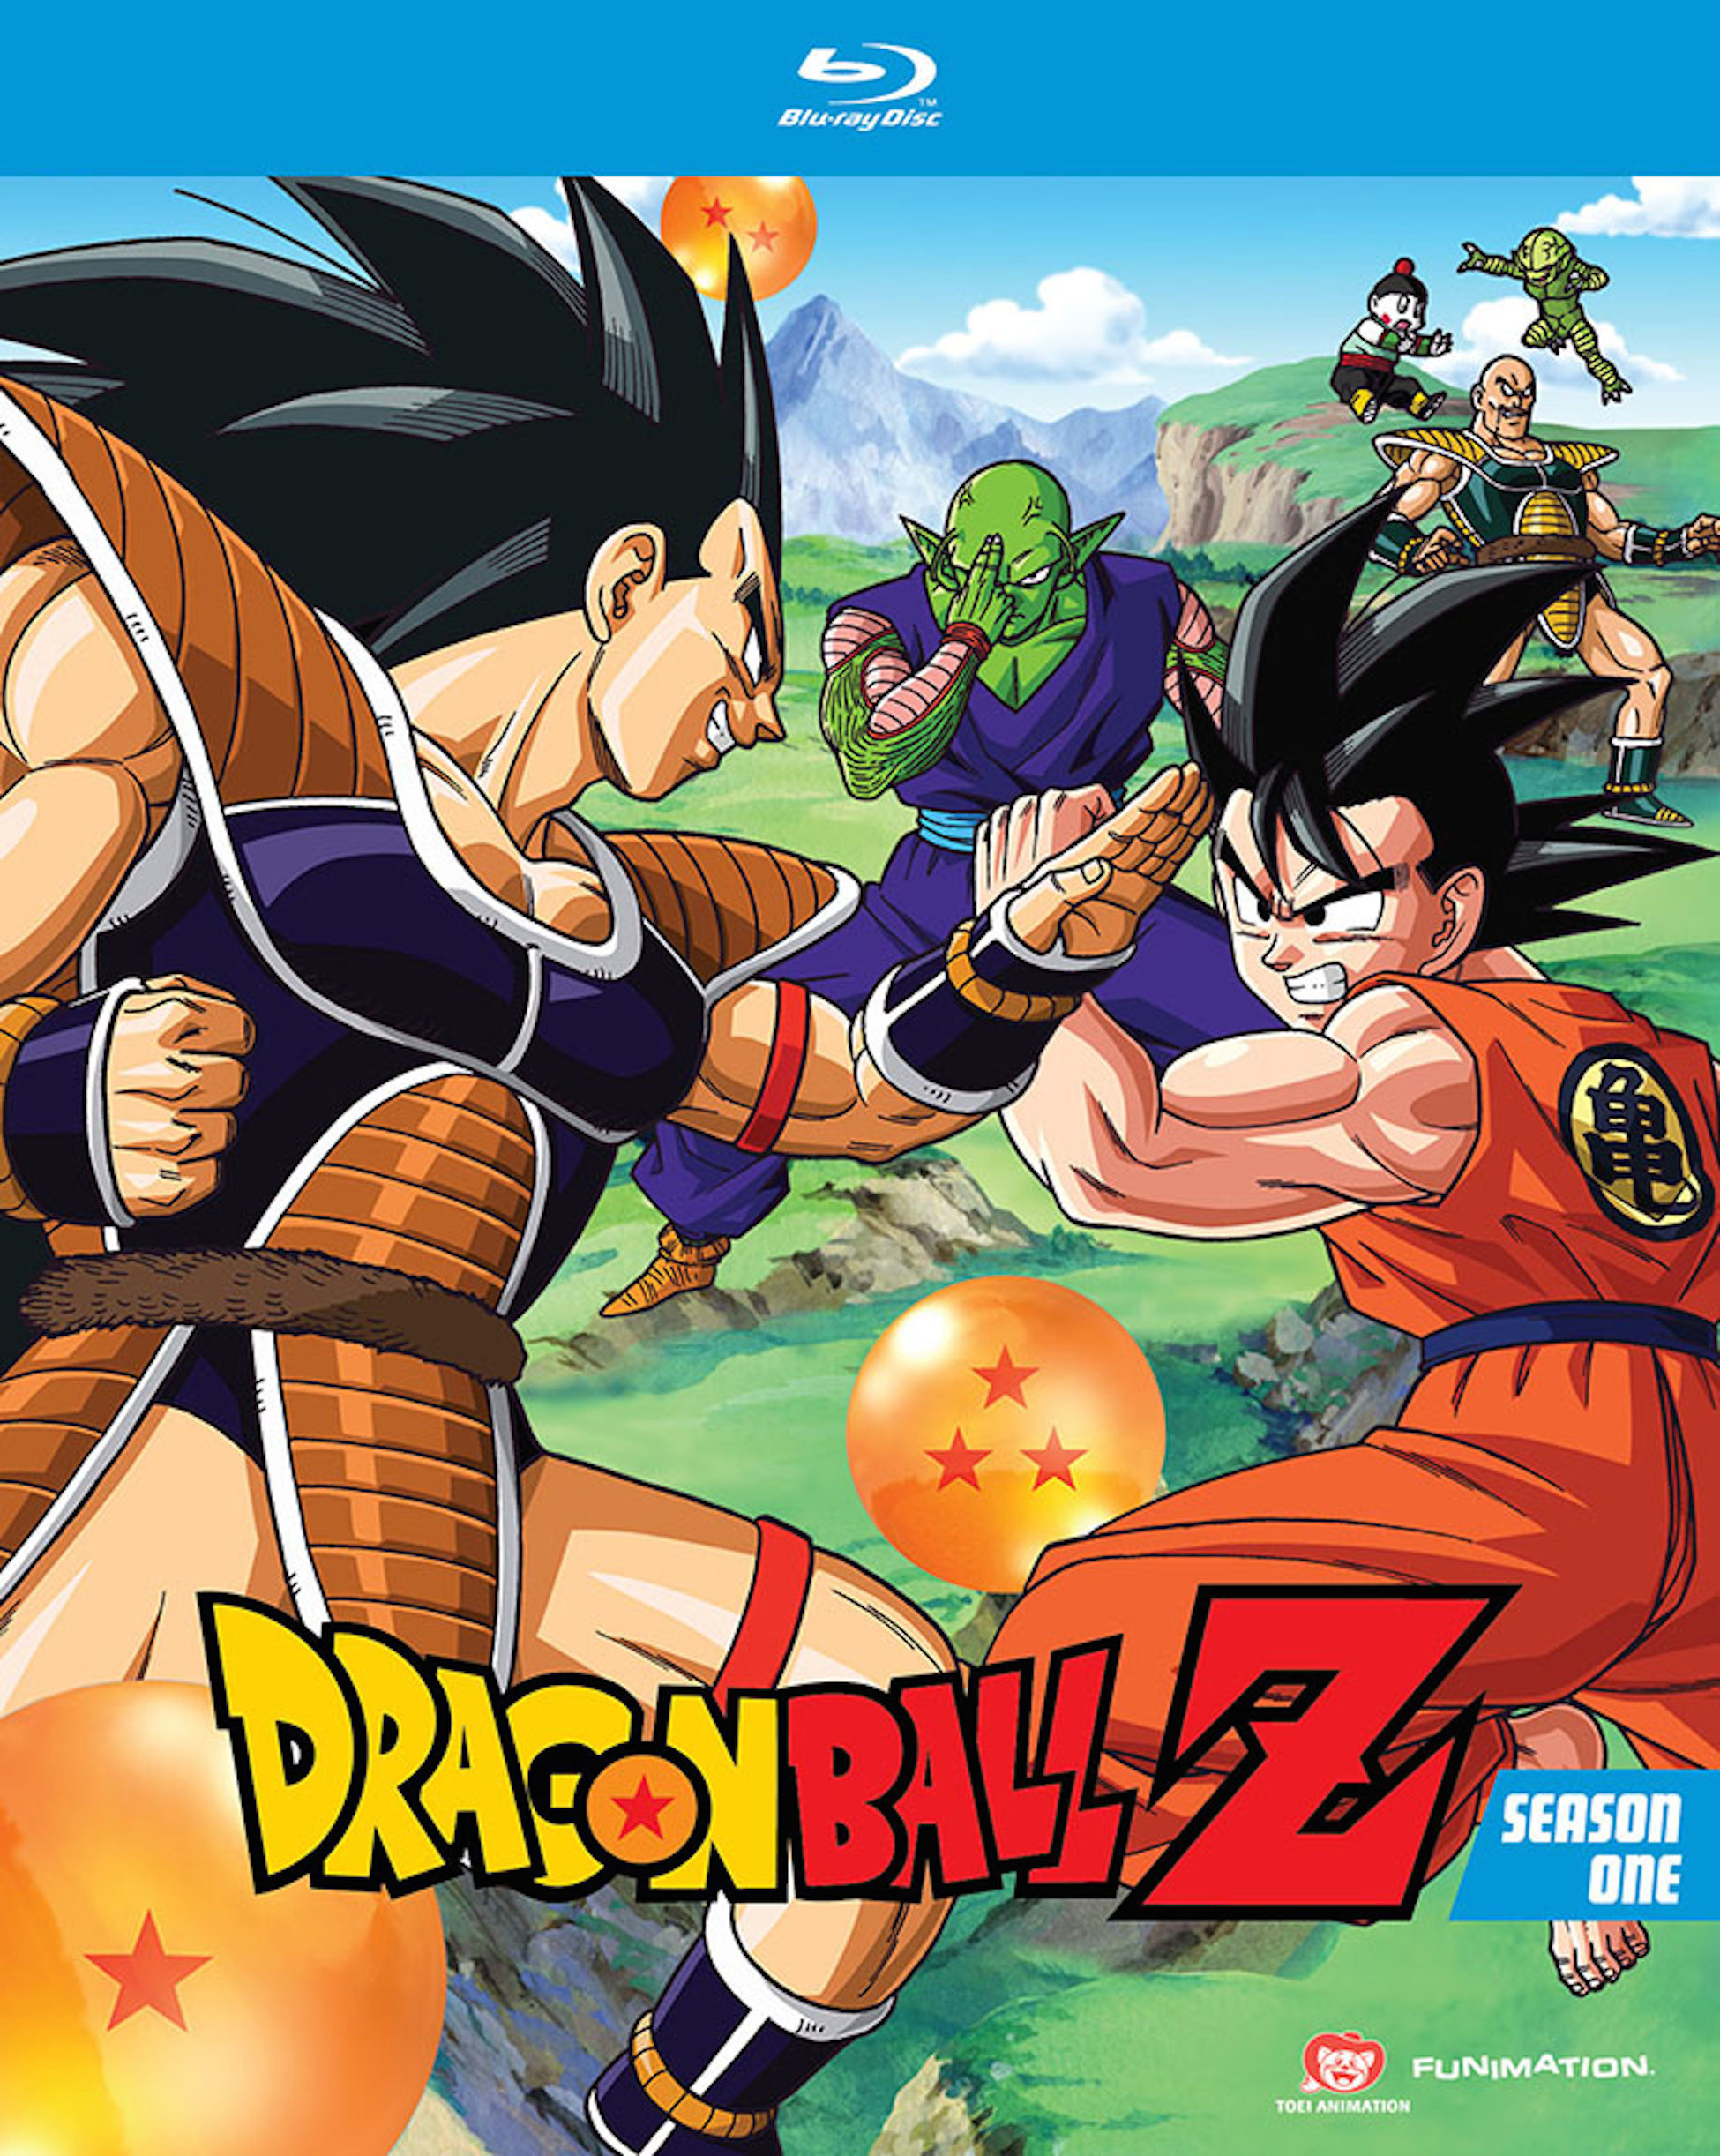 Dragon Ball Z Season 2 Hd Wallpaper